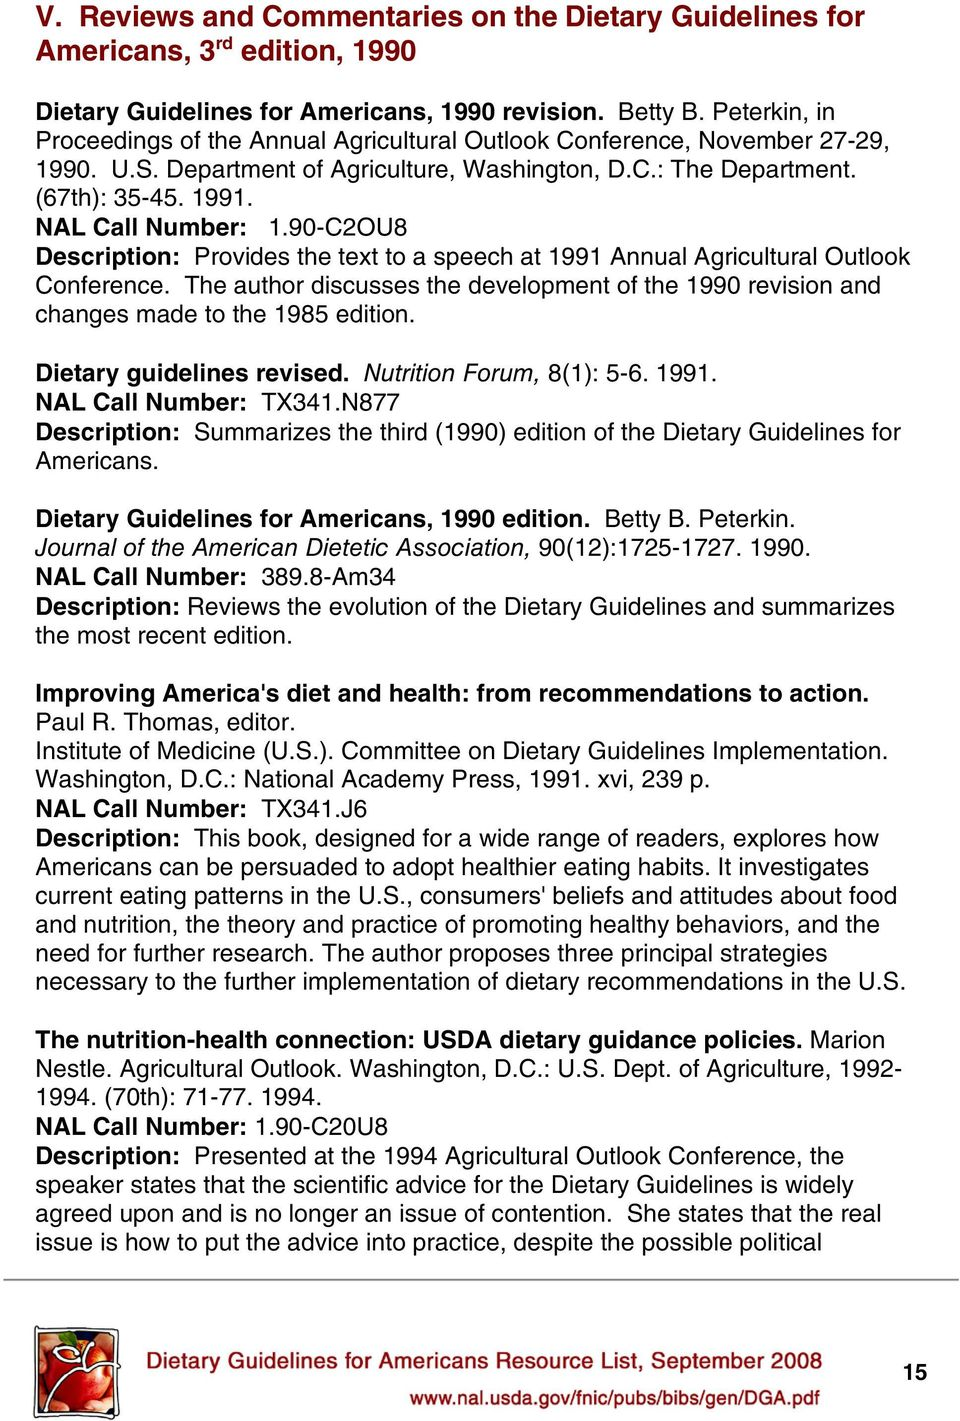 90-C2OU8 Description: Provides the text to a speech at 1991 Annual Agricultural Outlook Conference. The author discusses the development of the 1990 revision and changes made to the 1985 edition.